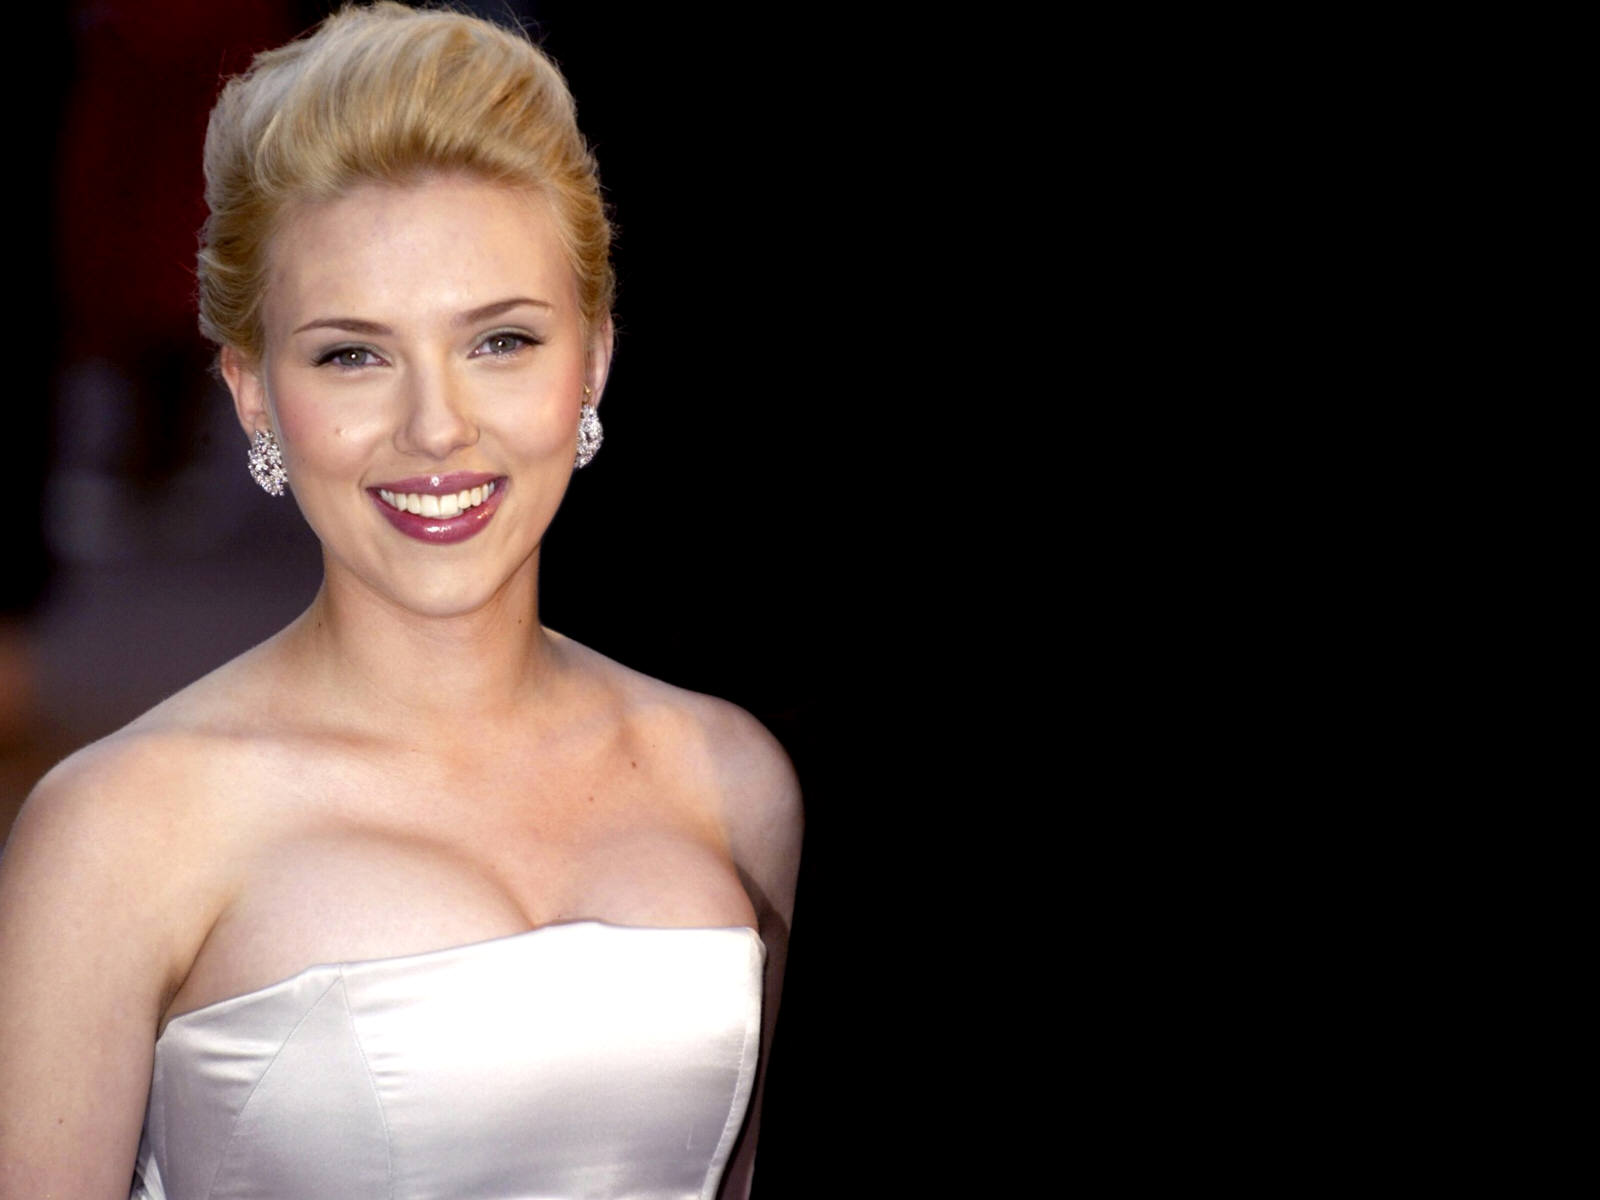 scarlett johansson hot hd - photo #30